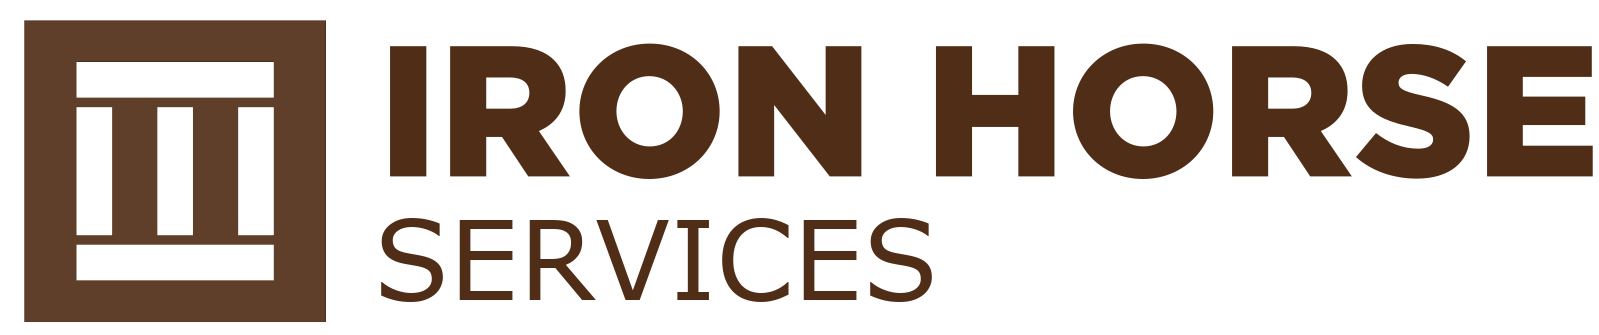 Iron Horse Services Announces Rail Car Cleaning and Maintenance Facility